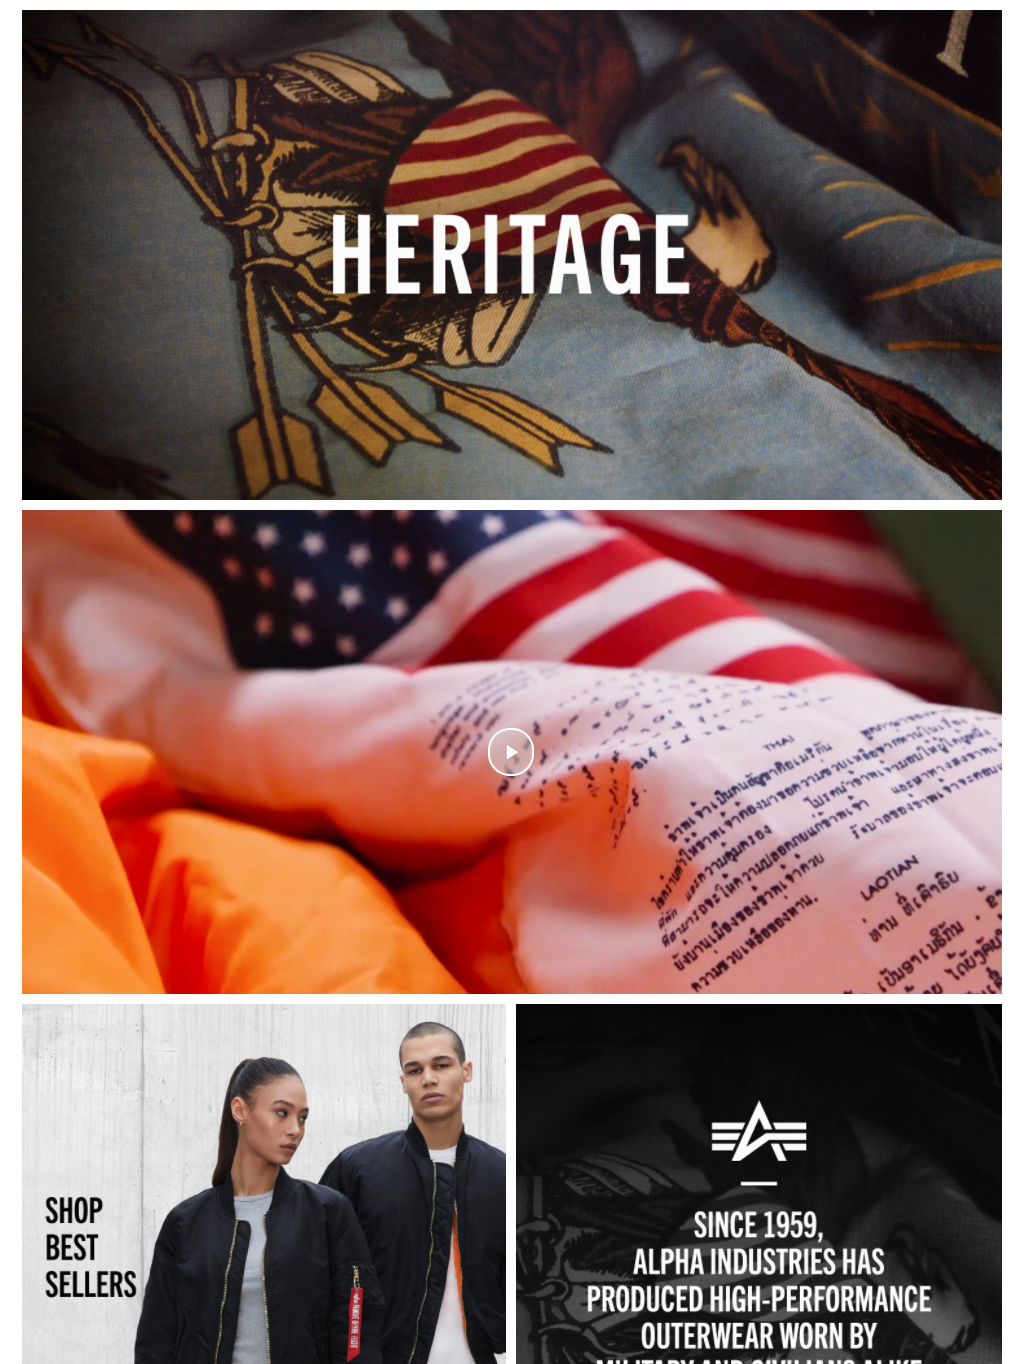 Alpha Industries Amazon Storefront example | Pattern Creative Services